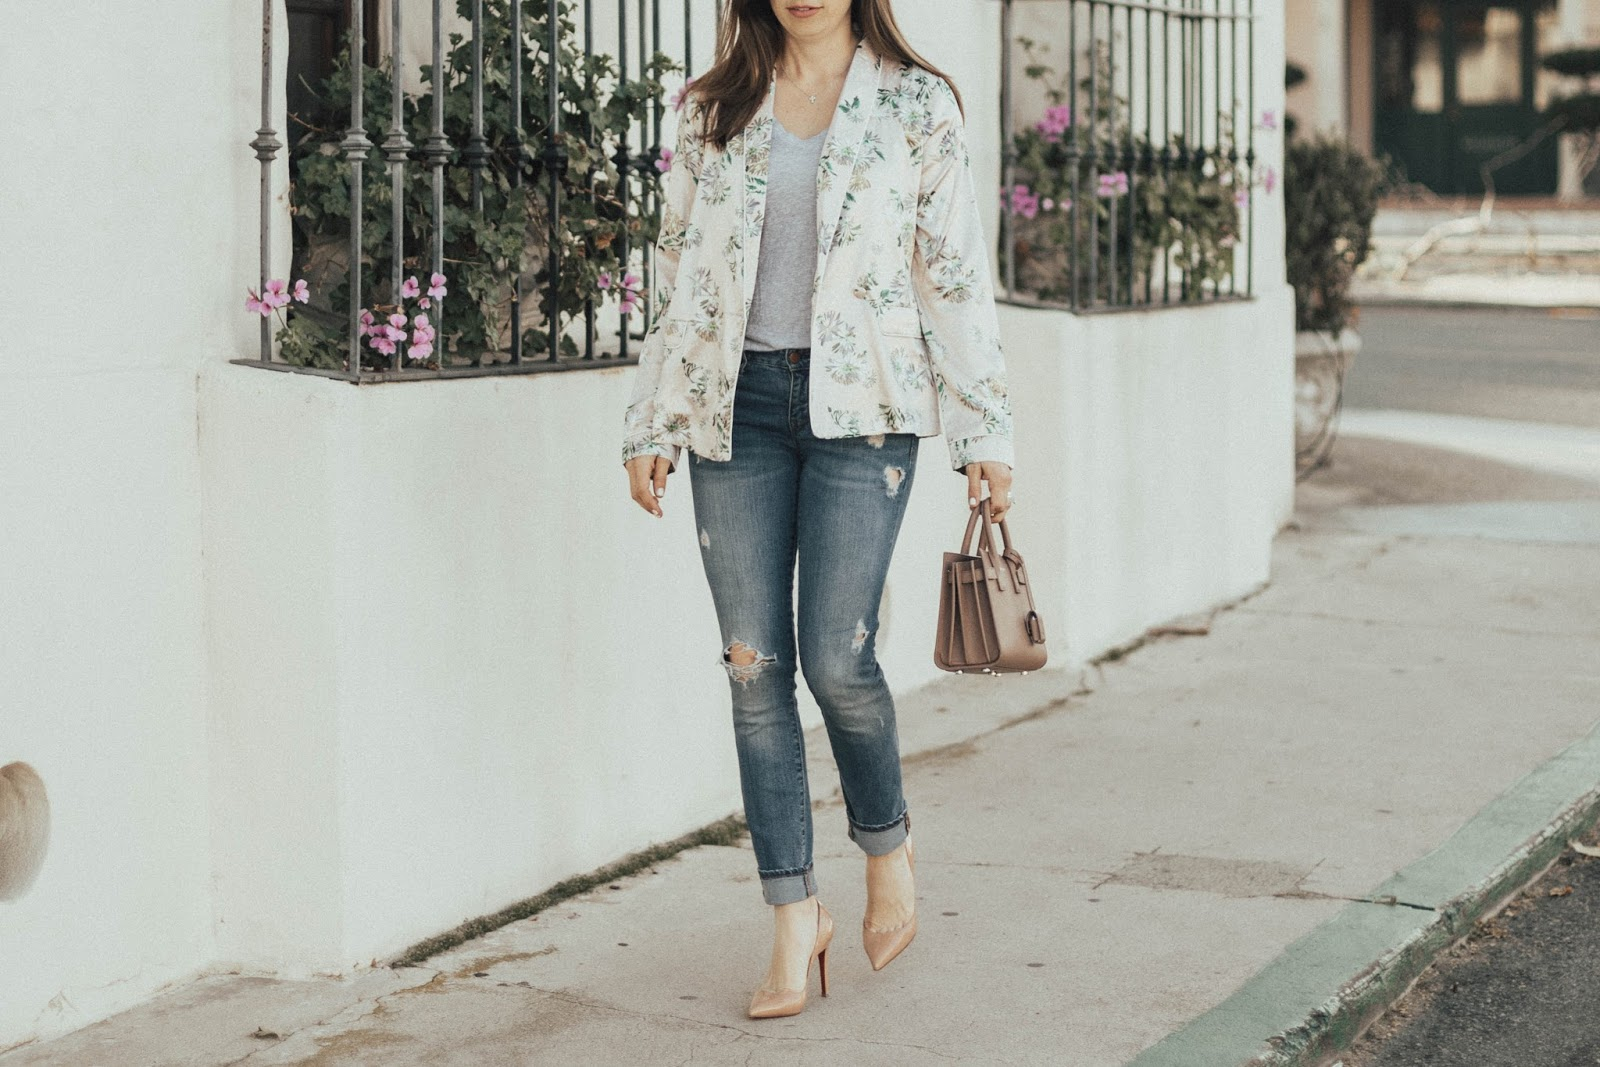 floral jacket outfit